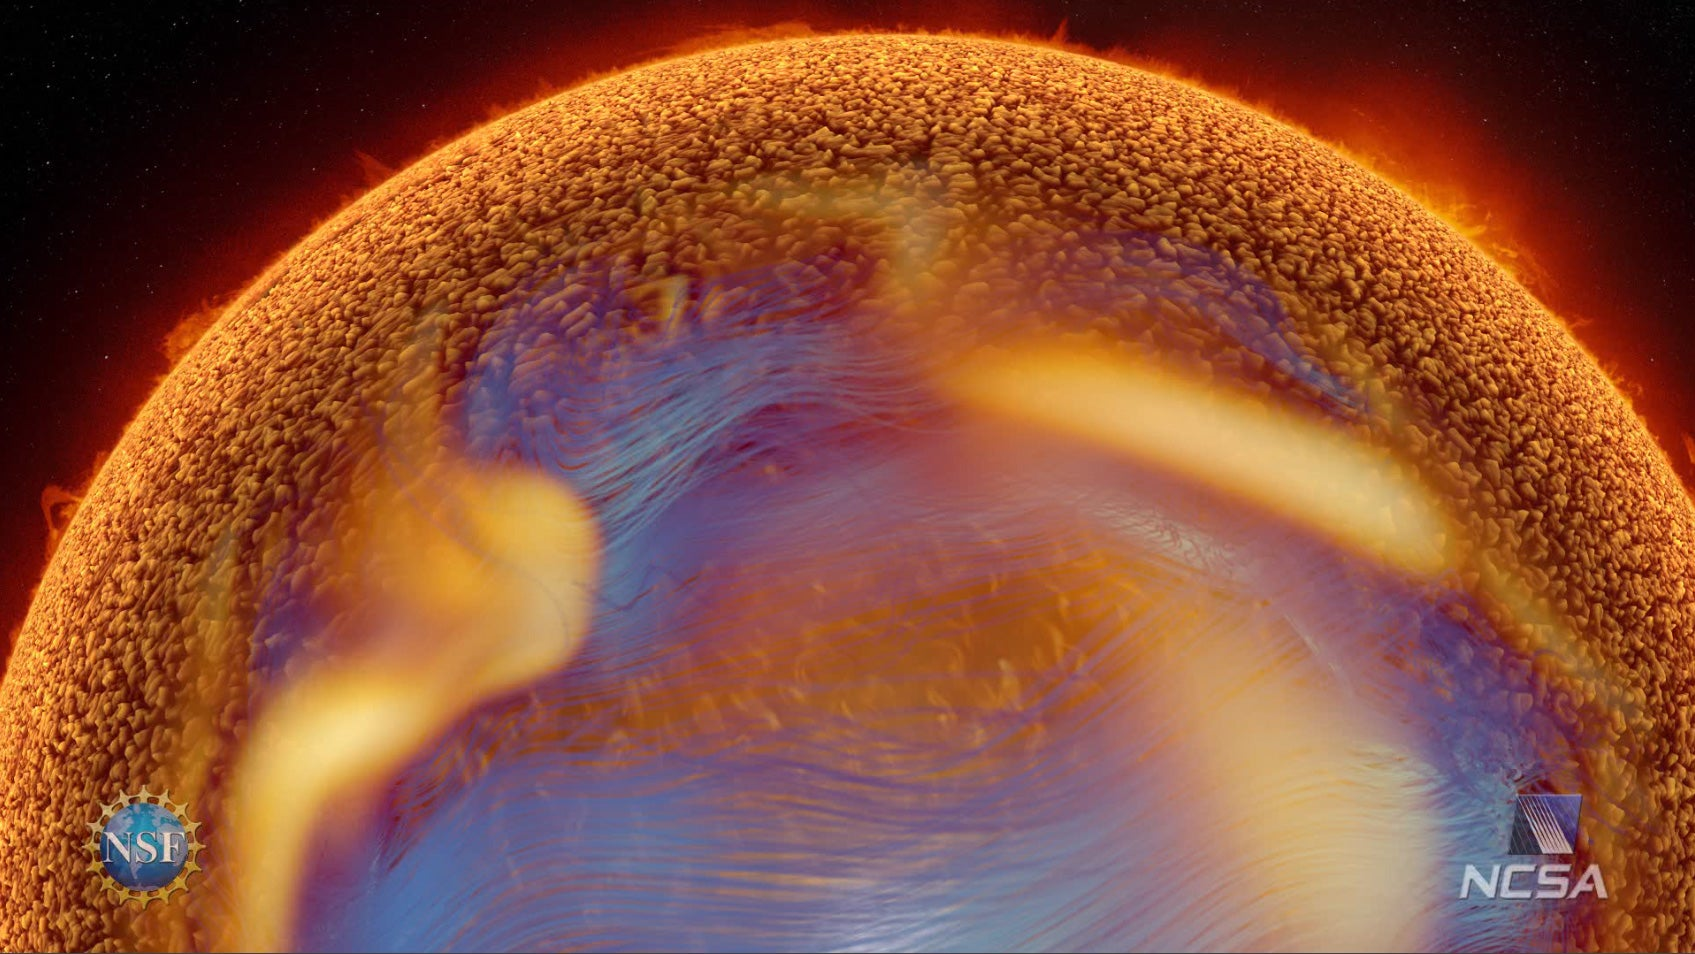 Journey Into The Sun's Guts With Benedict Cumberbatch As Your Guide [Video]